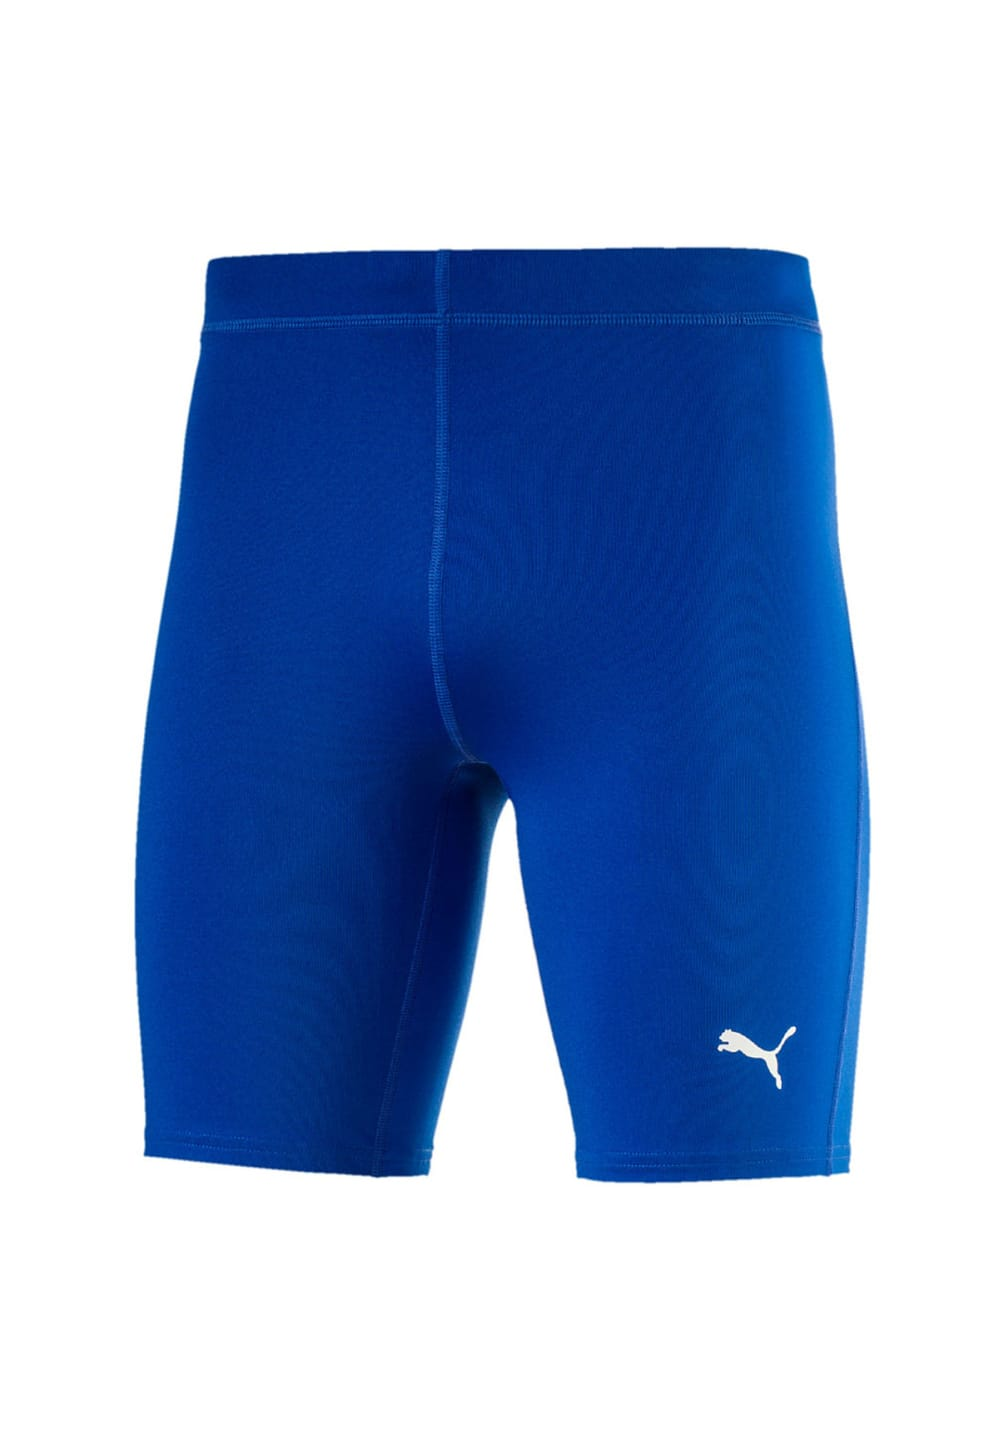 f69cf9ef4875 Puma Cross The Line Short Tight - Running trousers for Men - Blue ...